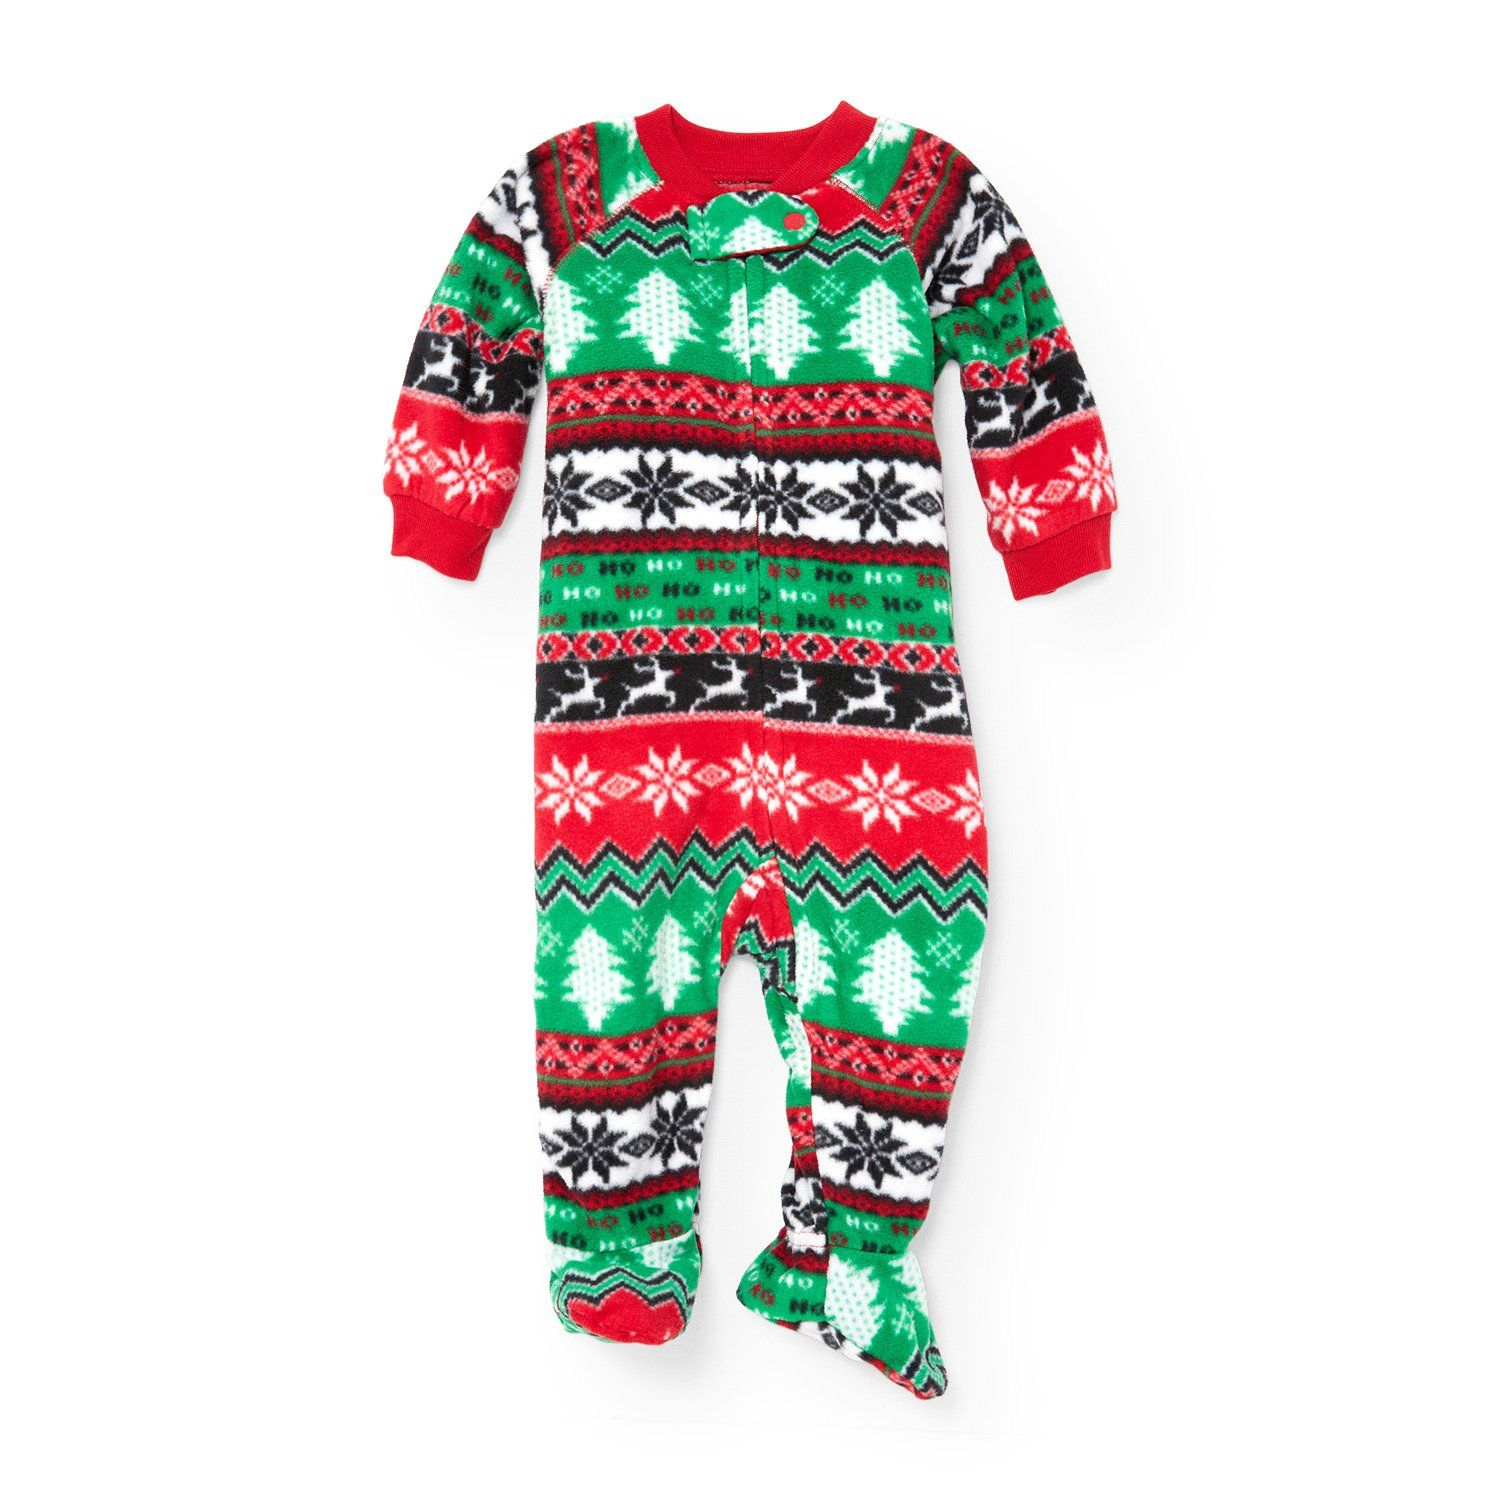 55a6c62b37 The Children s Place Baby Christmas Long Sleeve One-Piece Pajamas ...